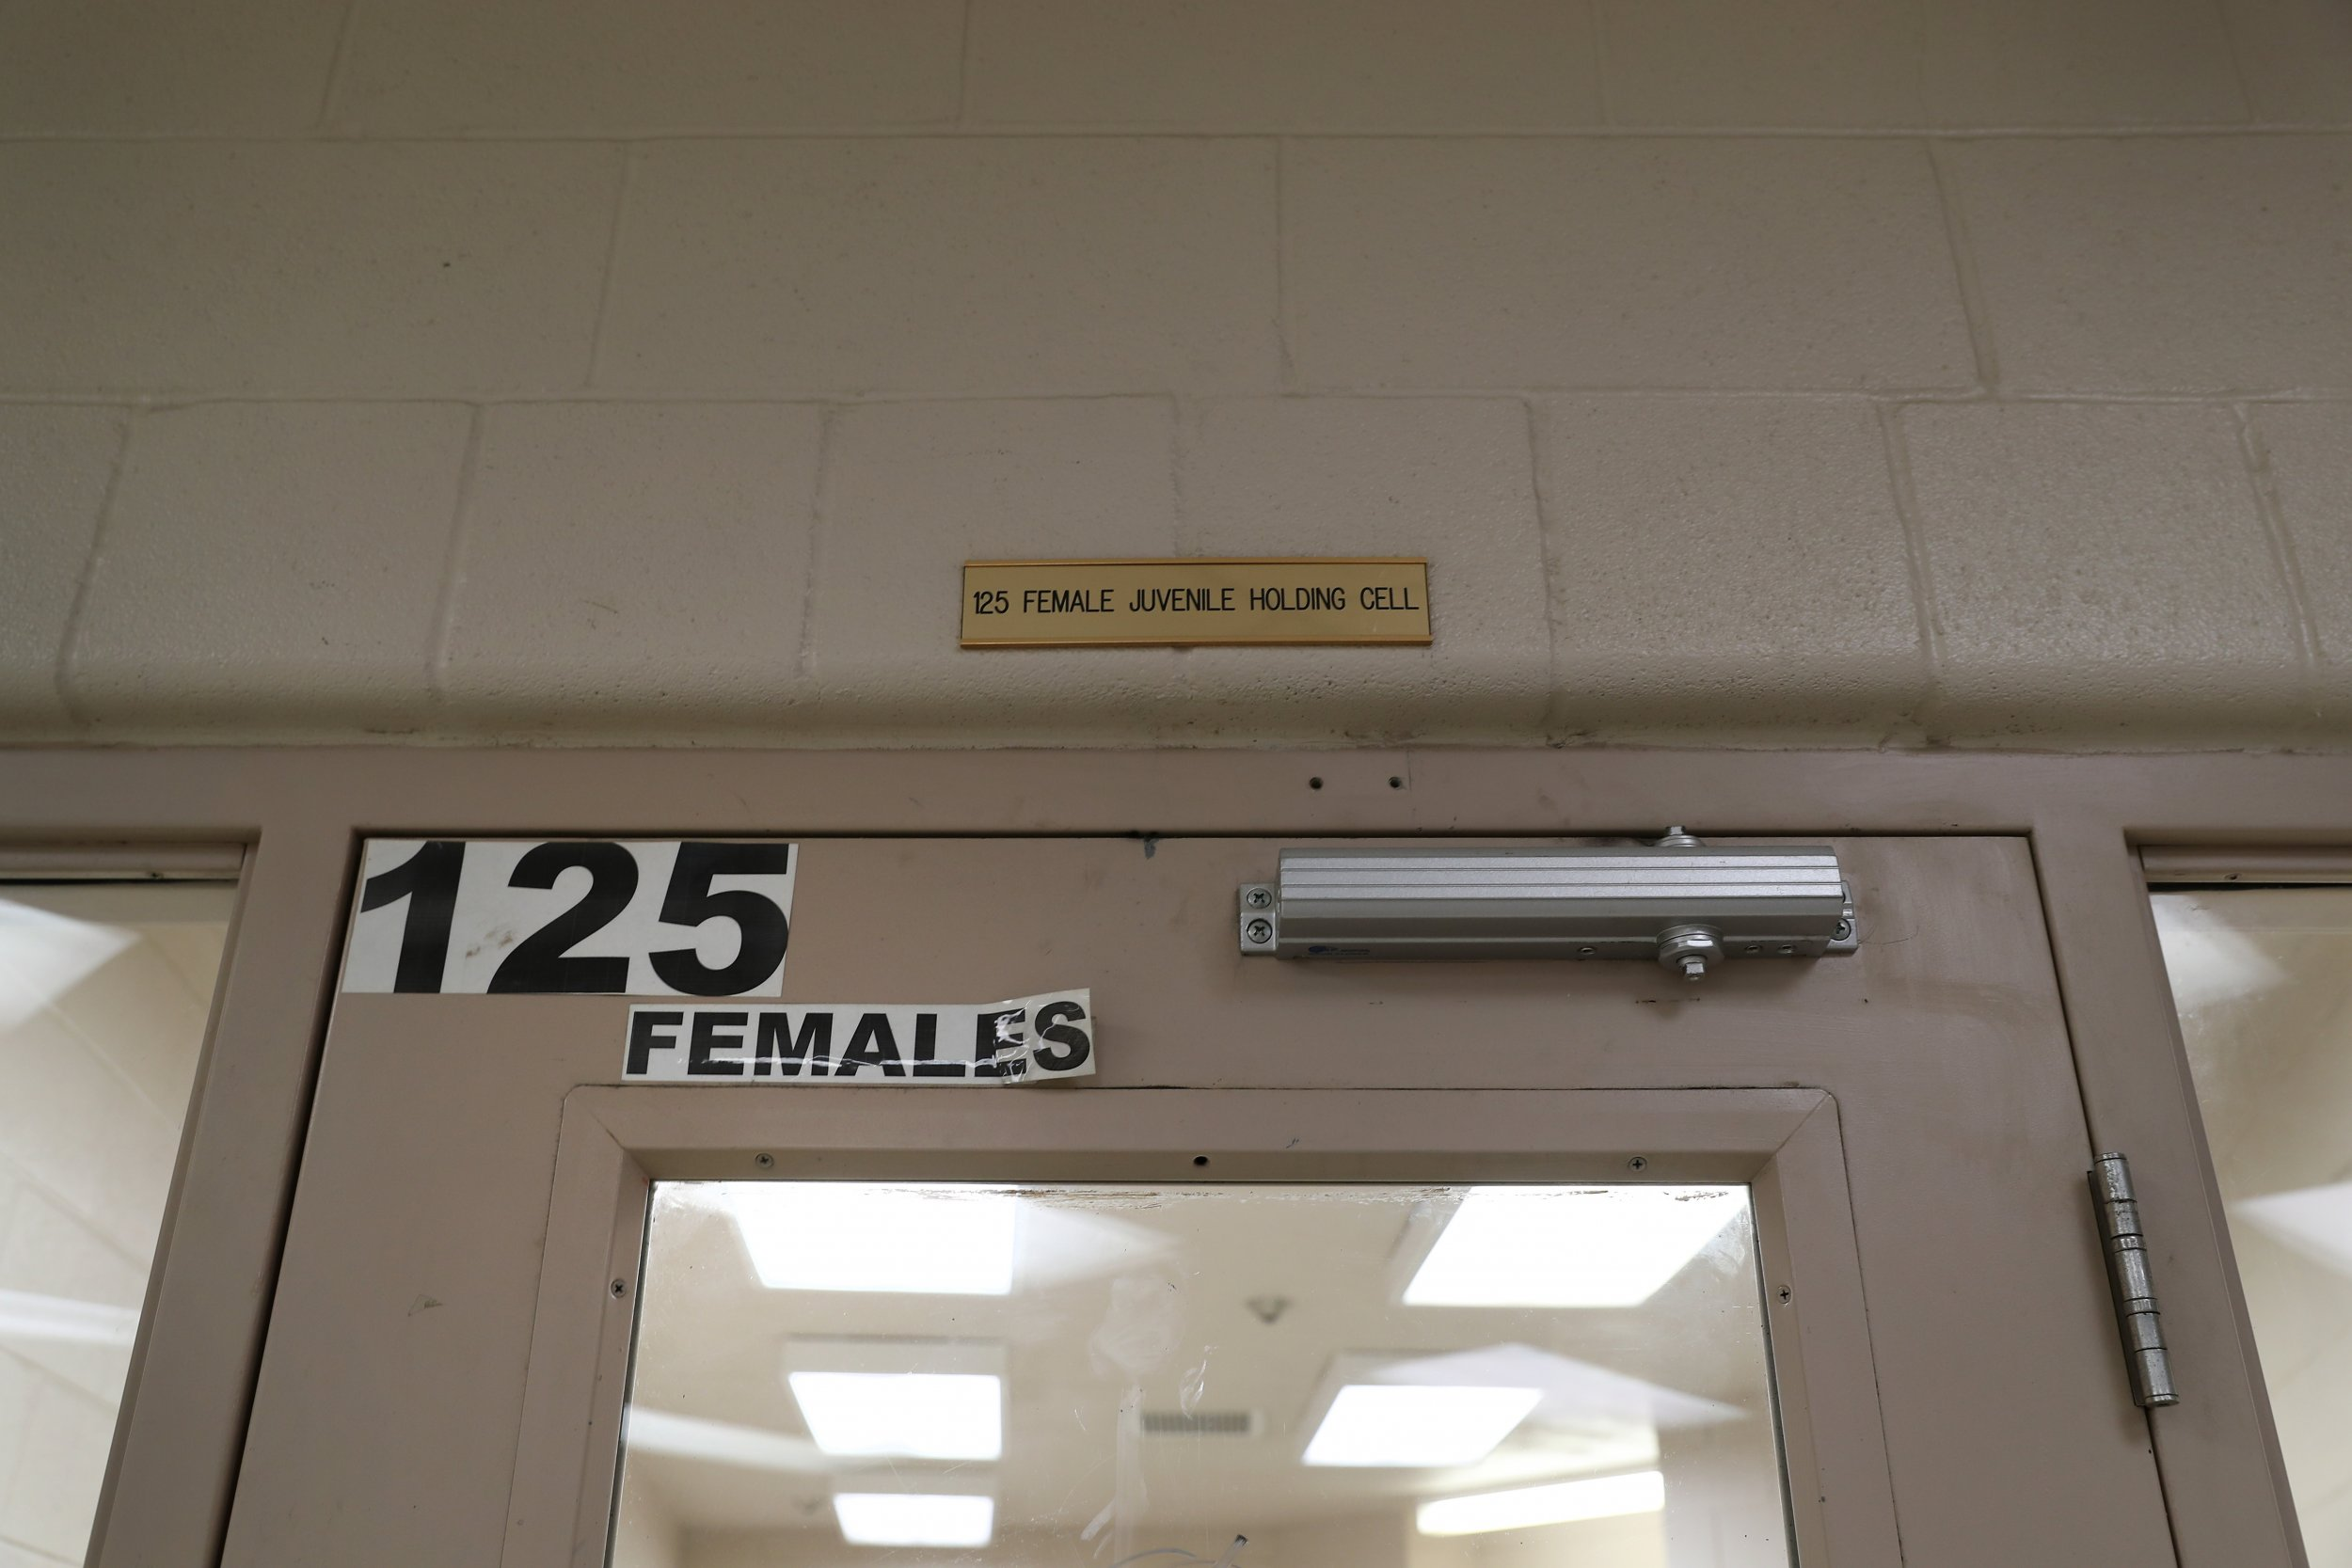 sexual abuse allegations at texas immigrant detention